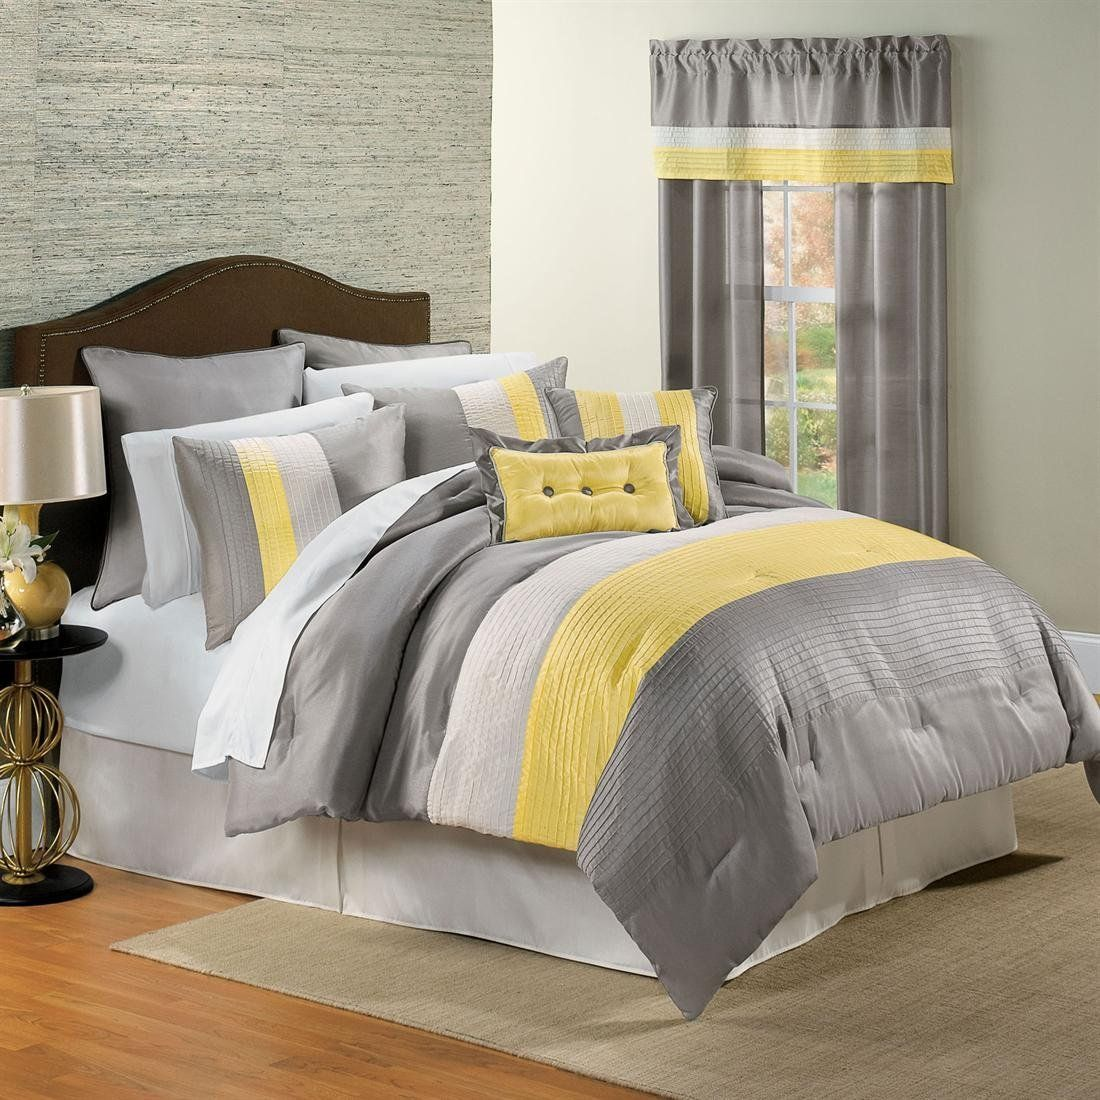 Depiction Of Yellow And Gray Bedroom Decor U2013 Neutral Meets Cheerful Nuance